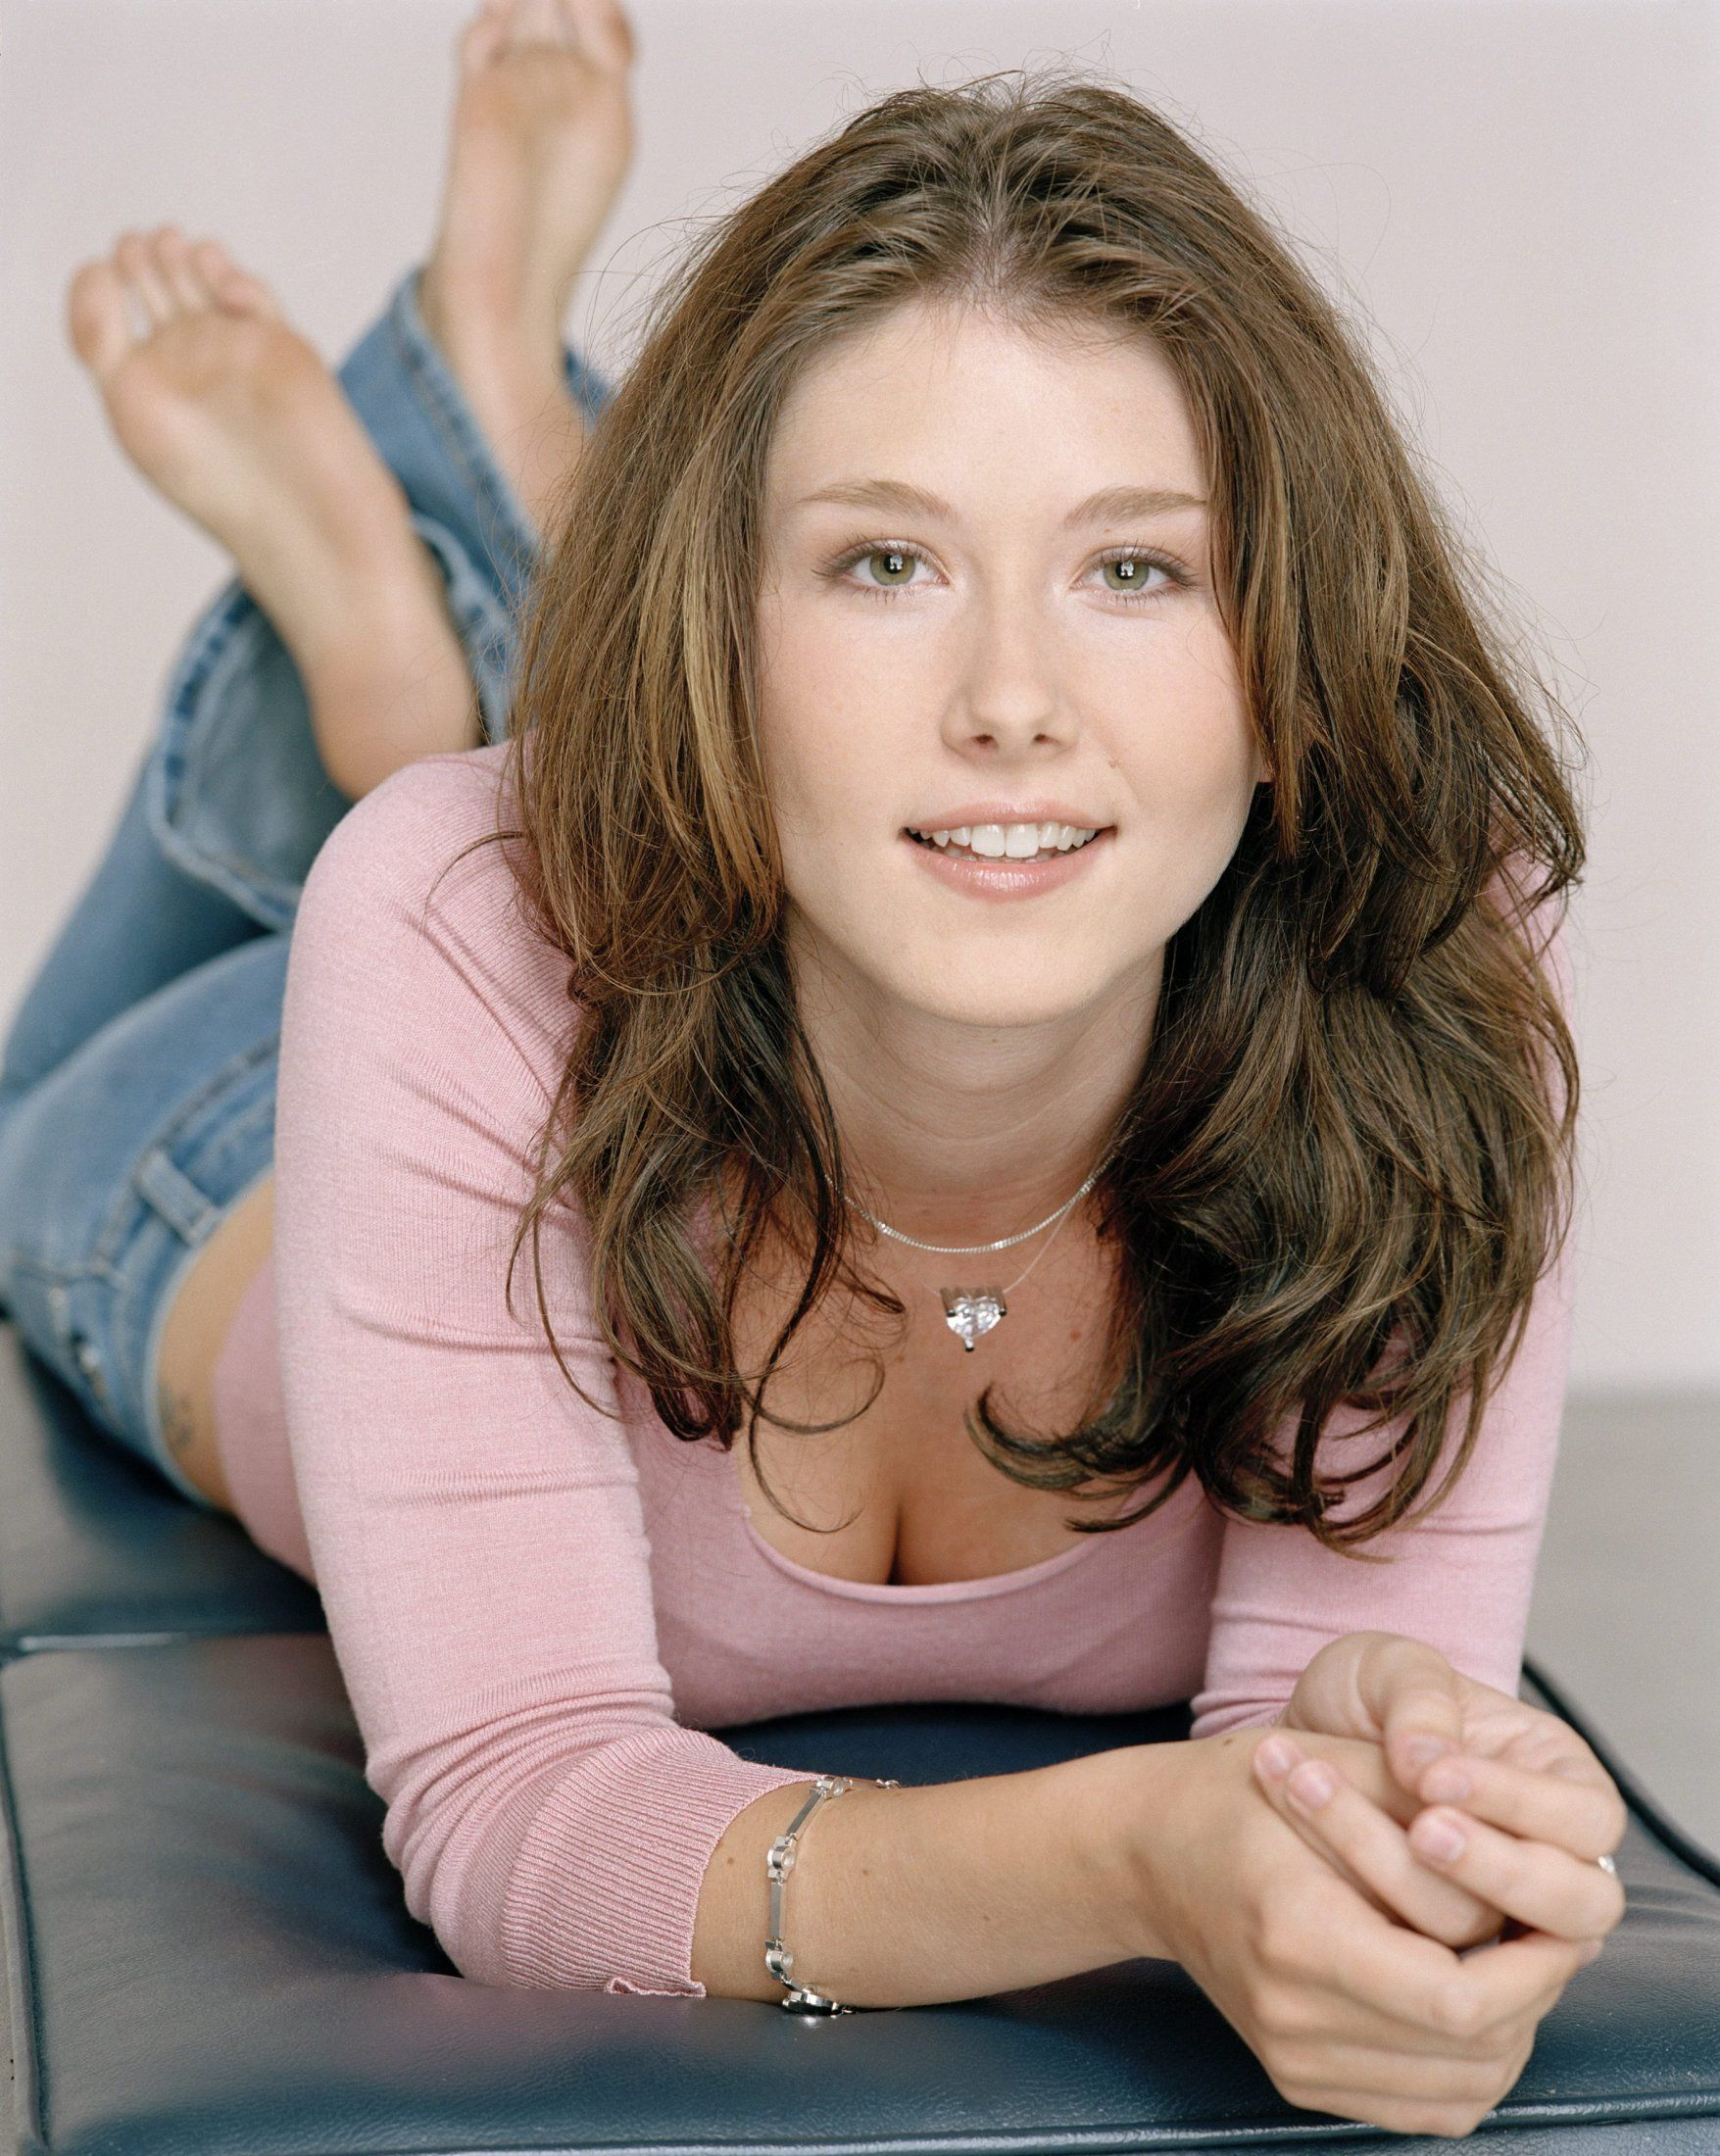 2019 Jewel Staite naked (13 photo), Ass, Sideboobs, Boobs, butt 2006